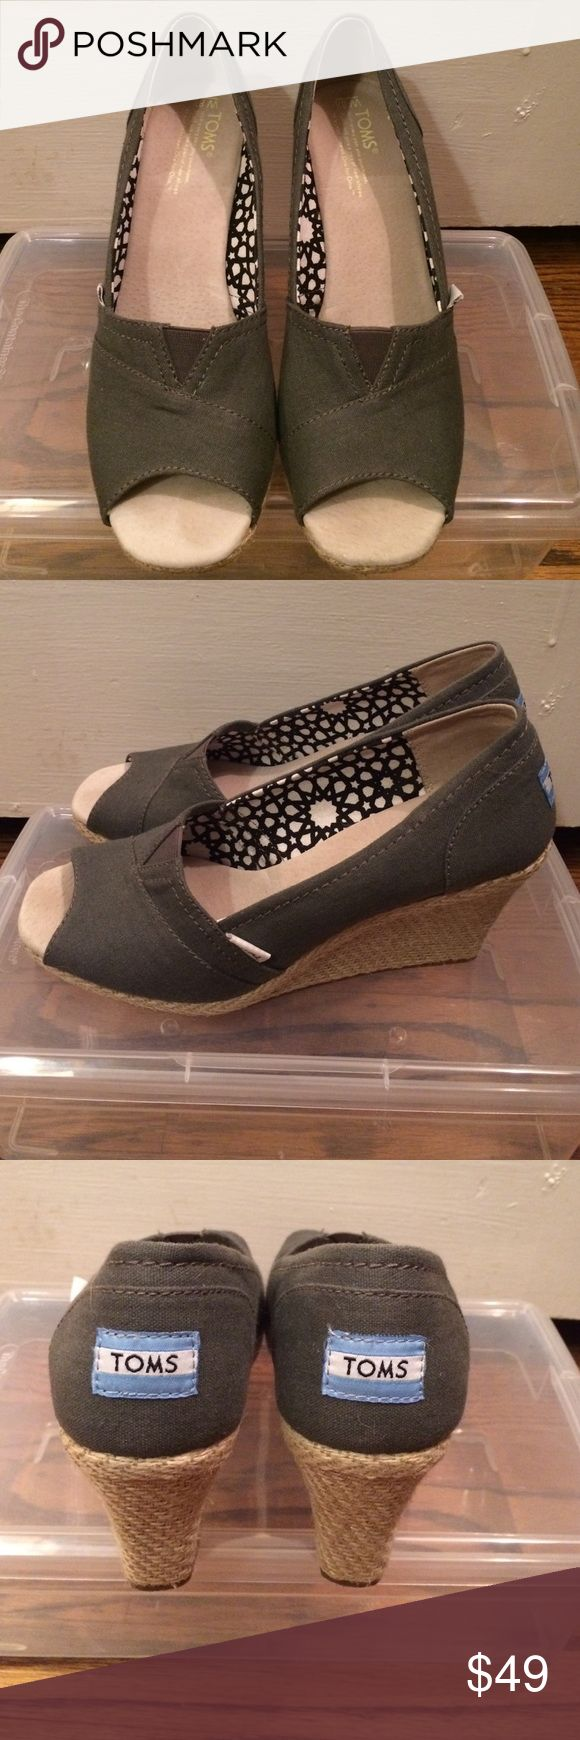 TOMS Wedges Size 8.5. 3.5 in wedge. Worn a few times. Like new. No trades or lowball offers please TOMS Shoes Espadrilles